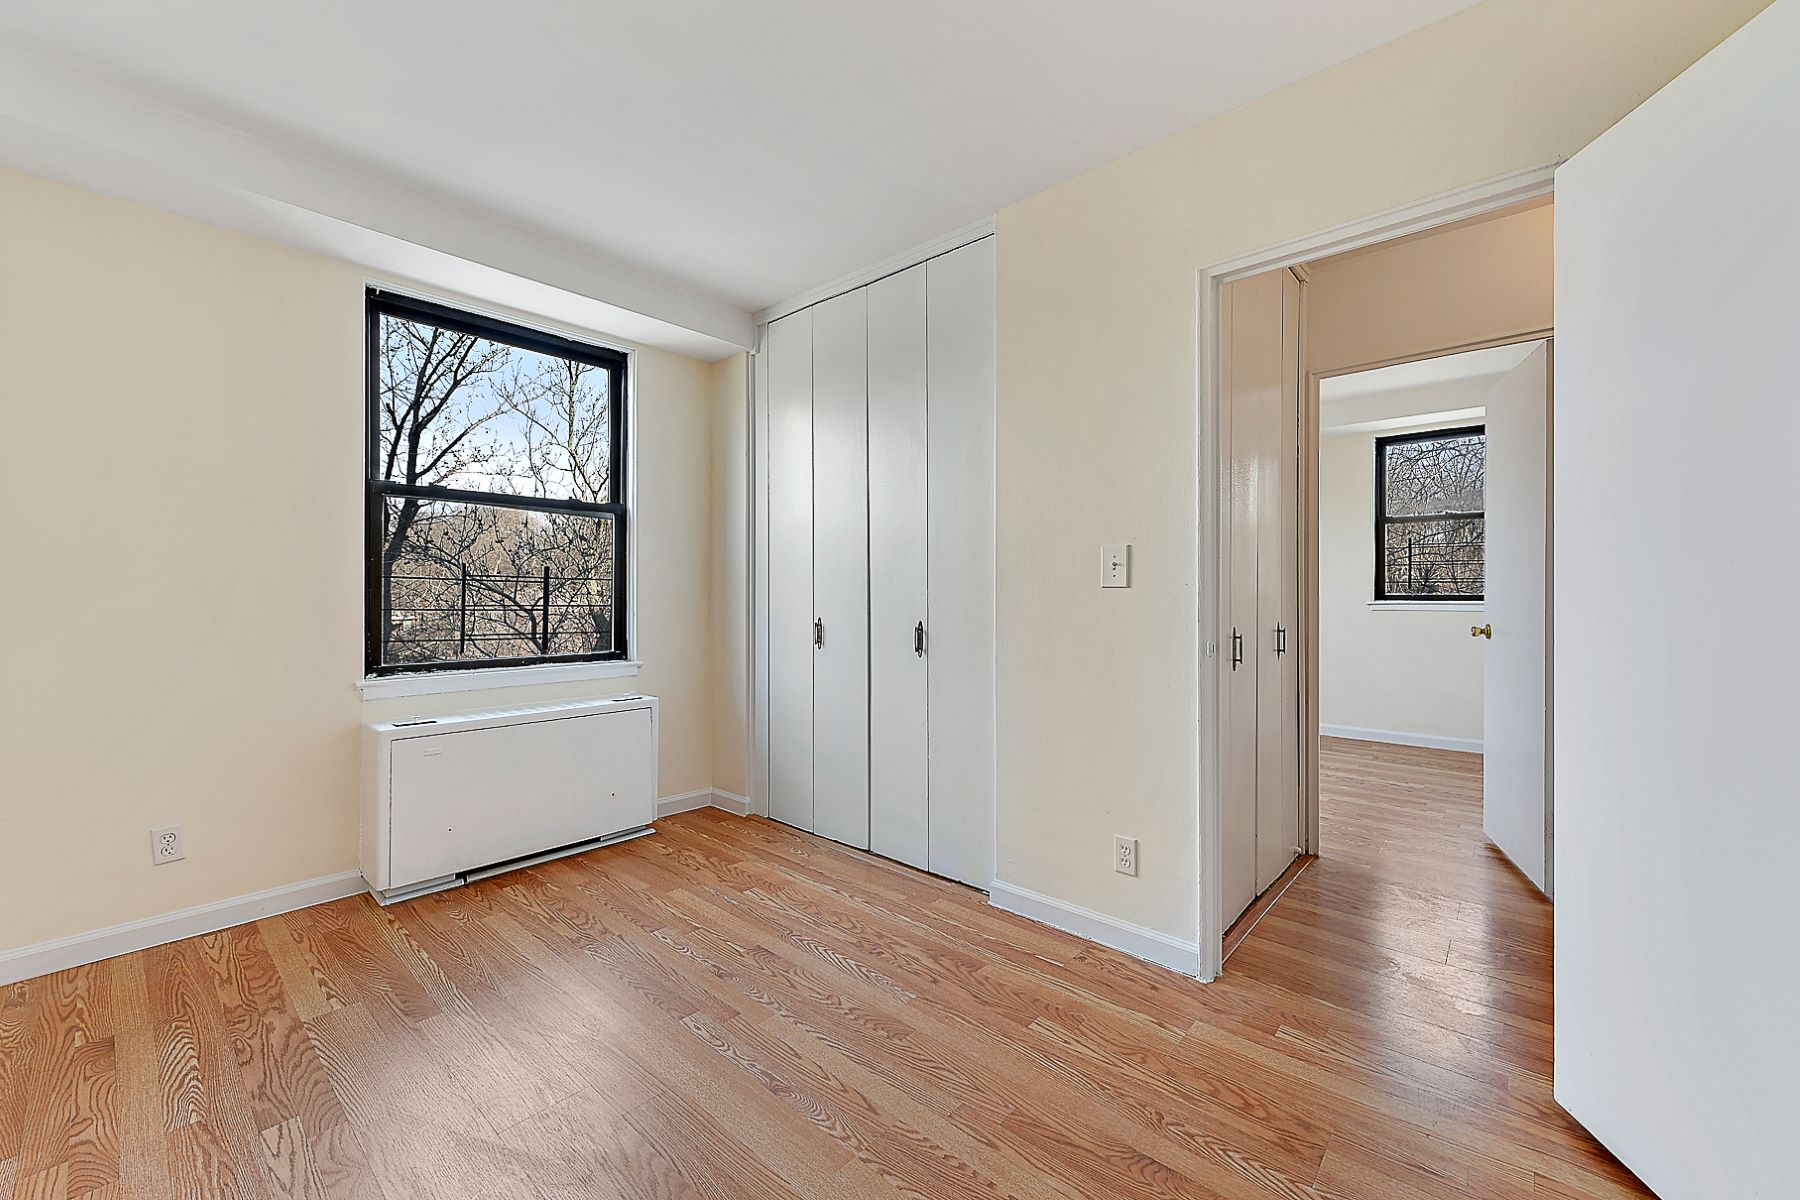 Co-op for Sale at Corner 3 Bedroom with Terrace 4901 Henry Hudson Parkway 7E, Riverdale, New York, 10471 United States